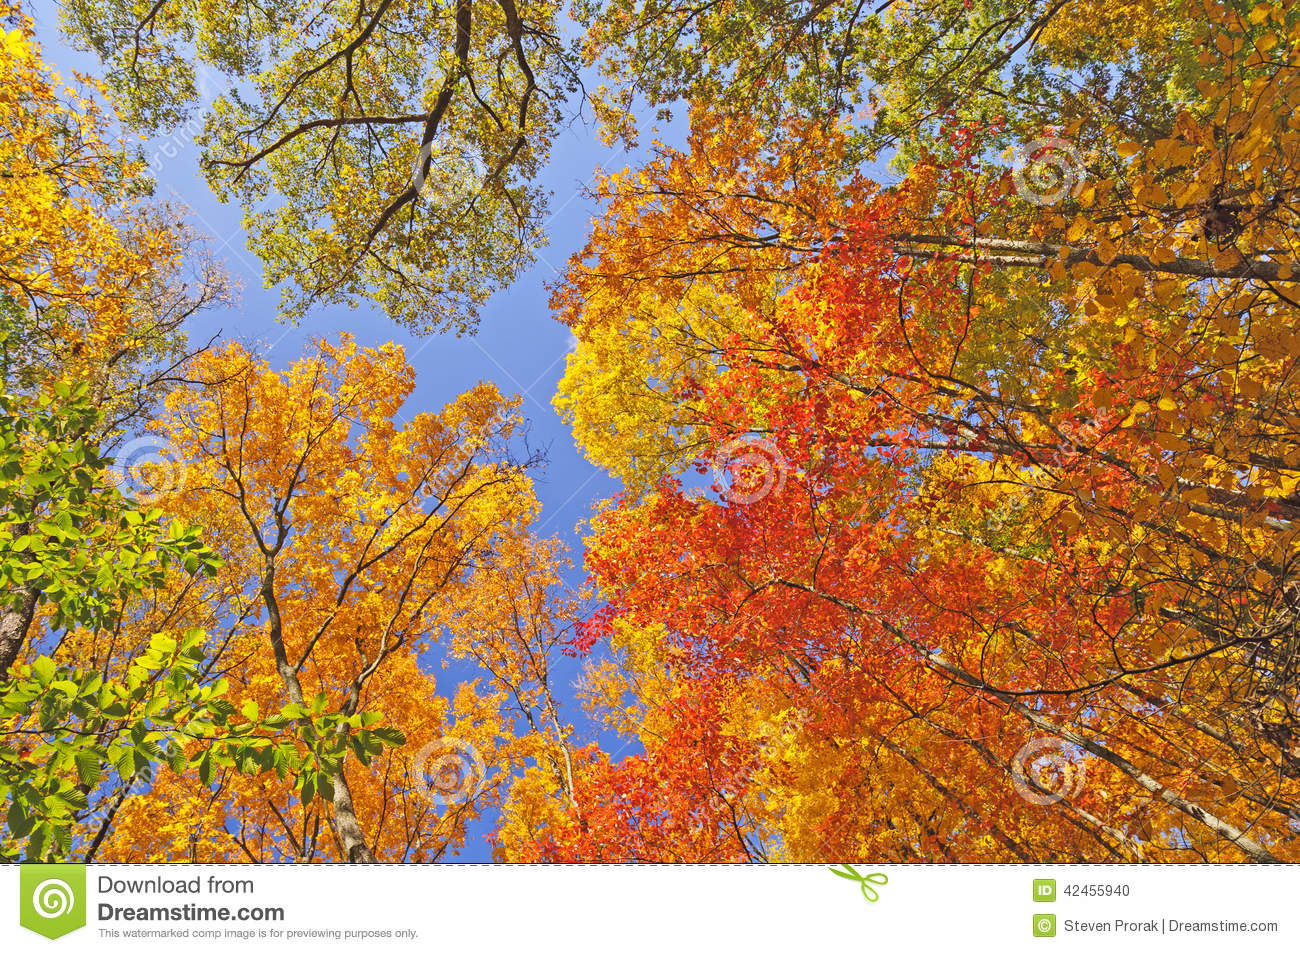 Fall-Farben in Forest Canopy